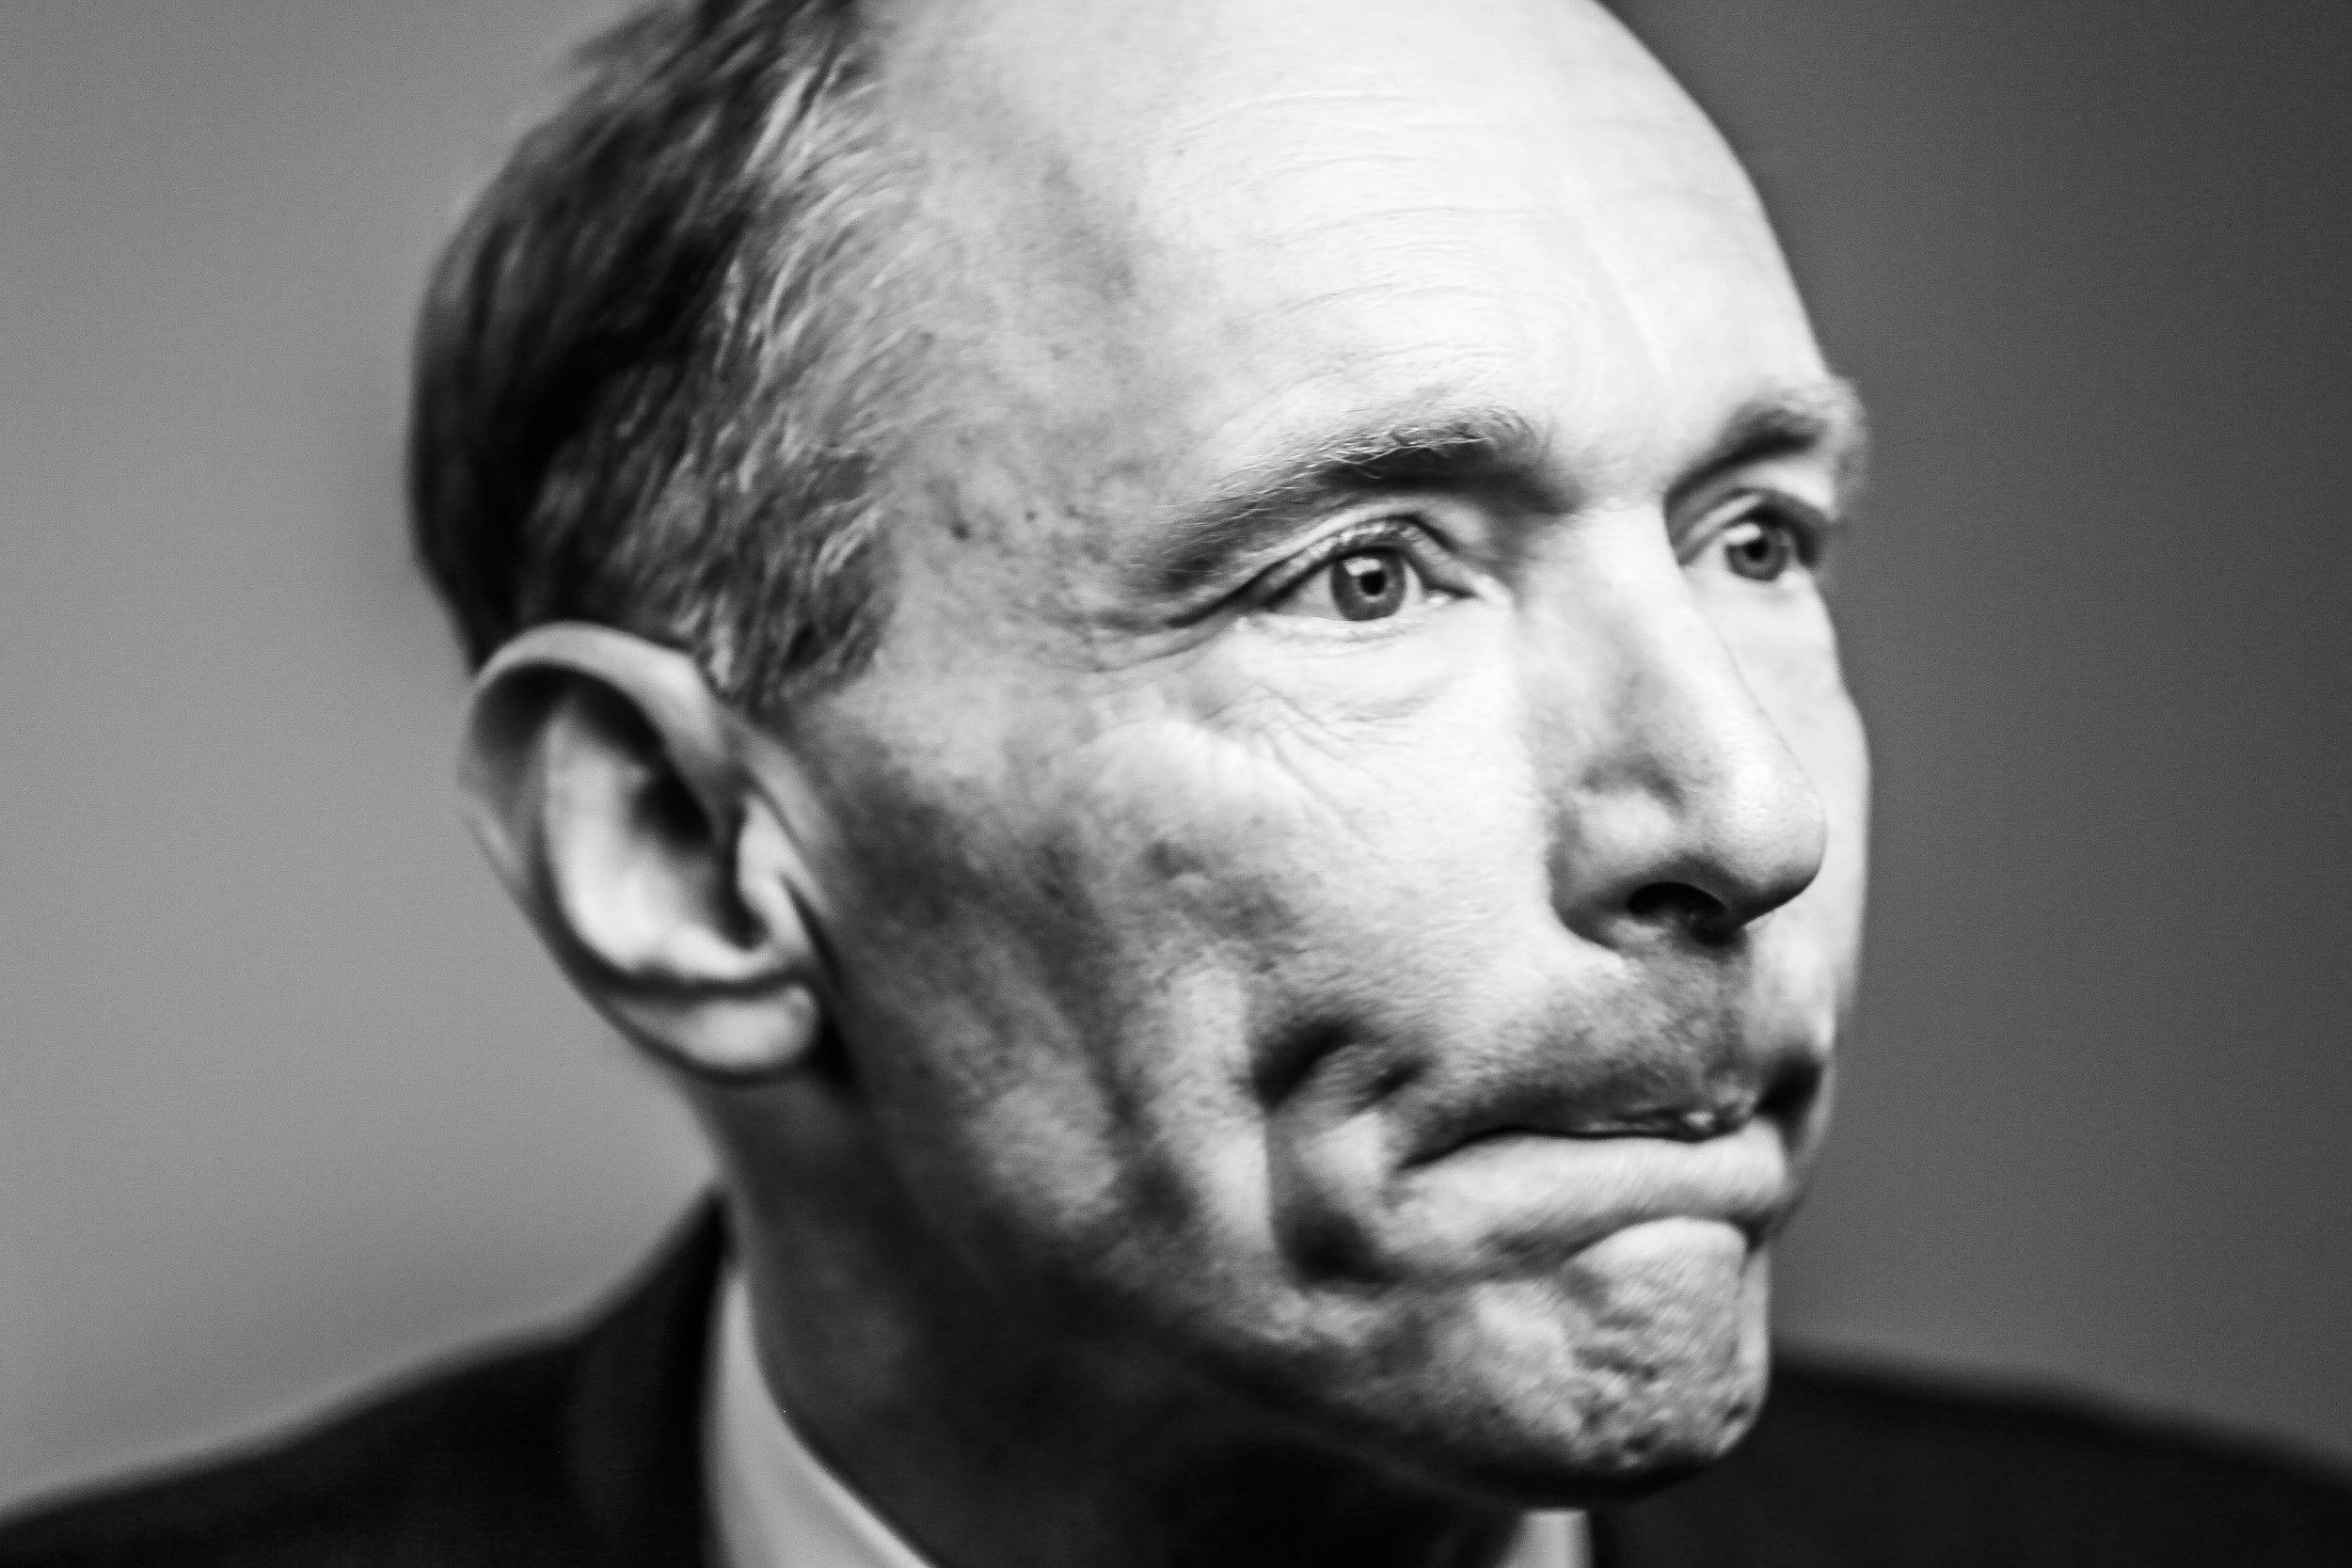 Tim Berners-Lee-001.jpg